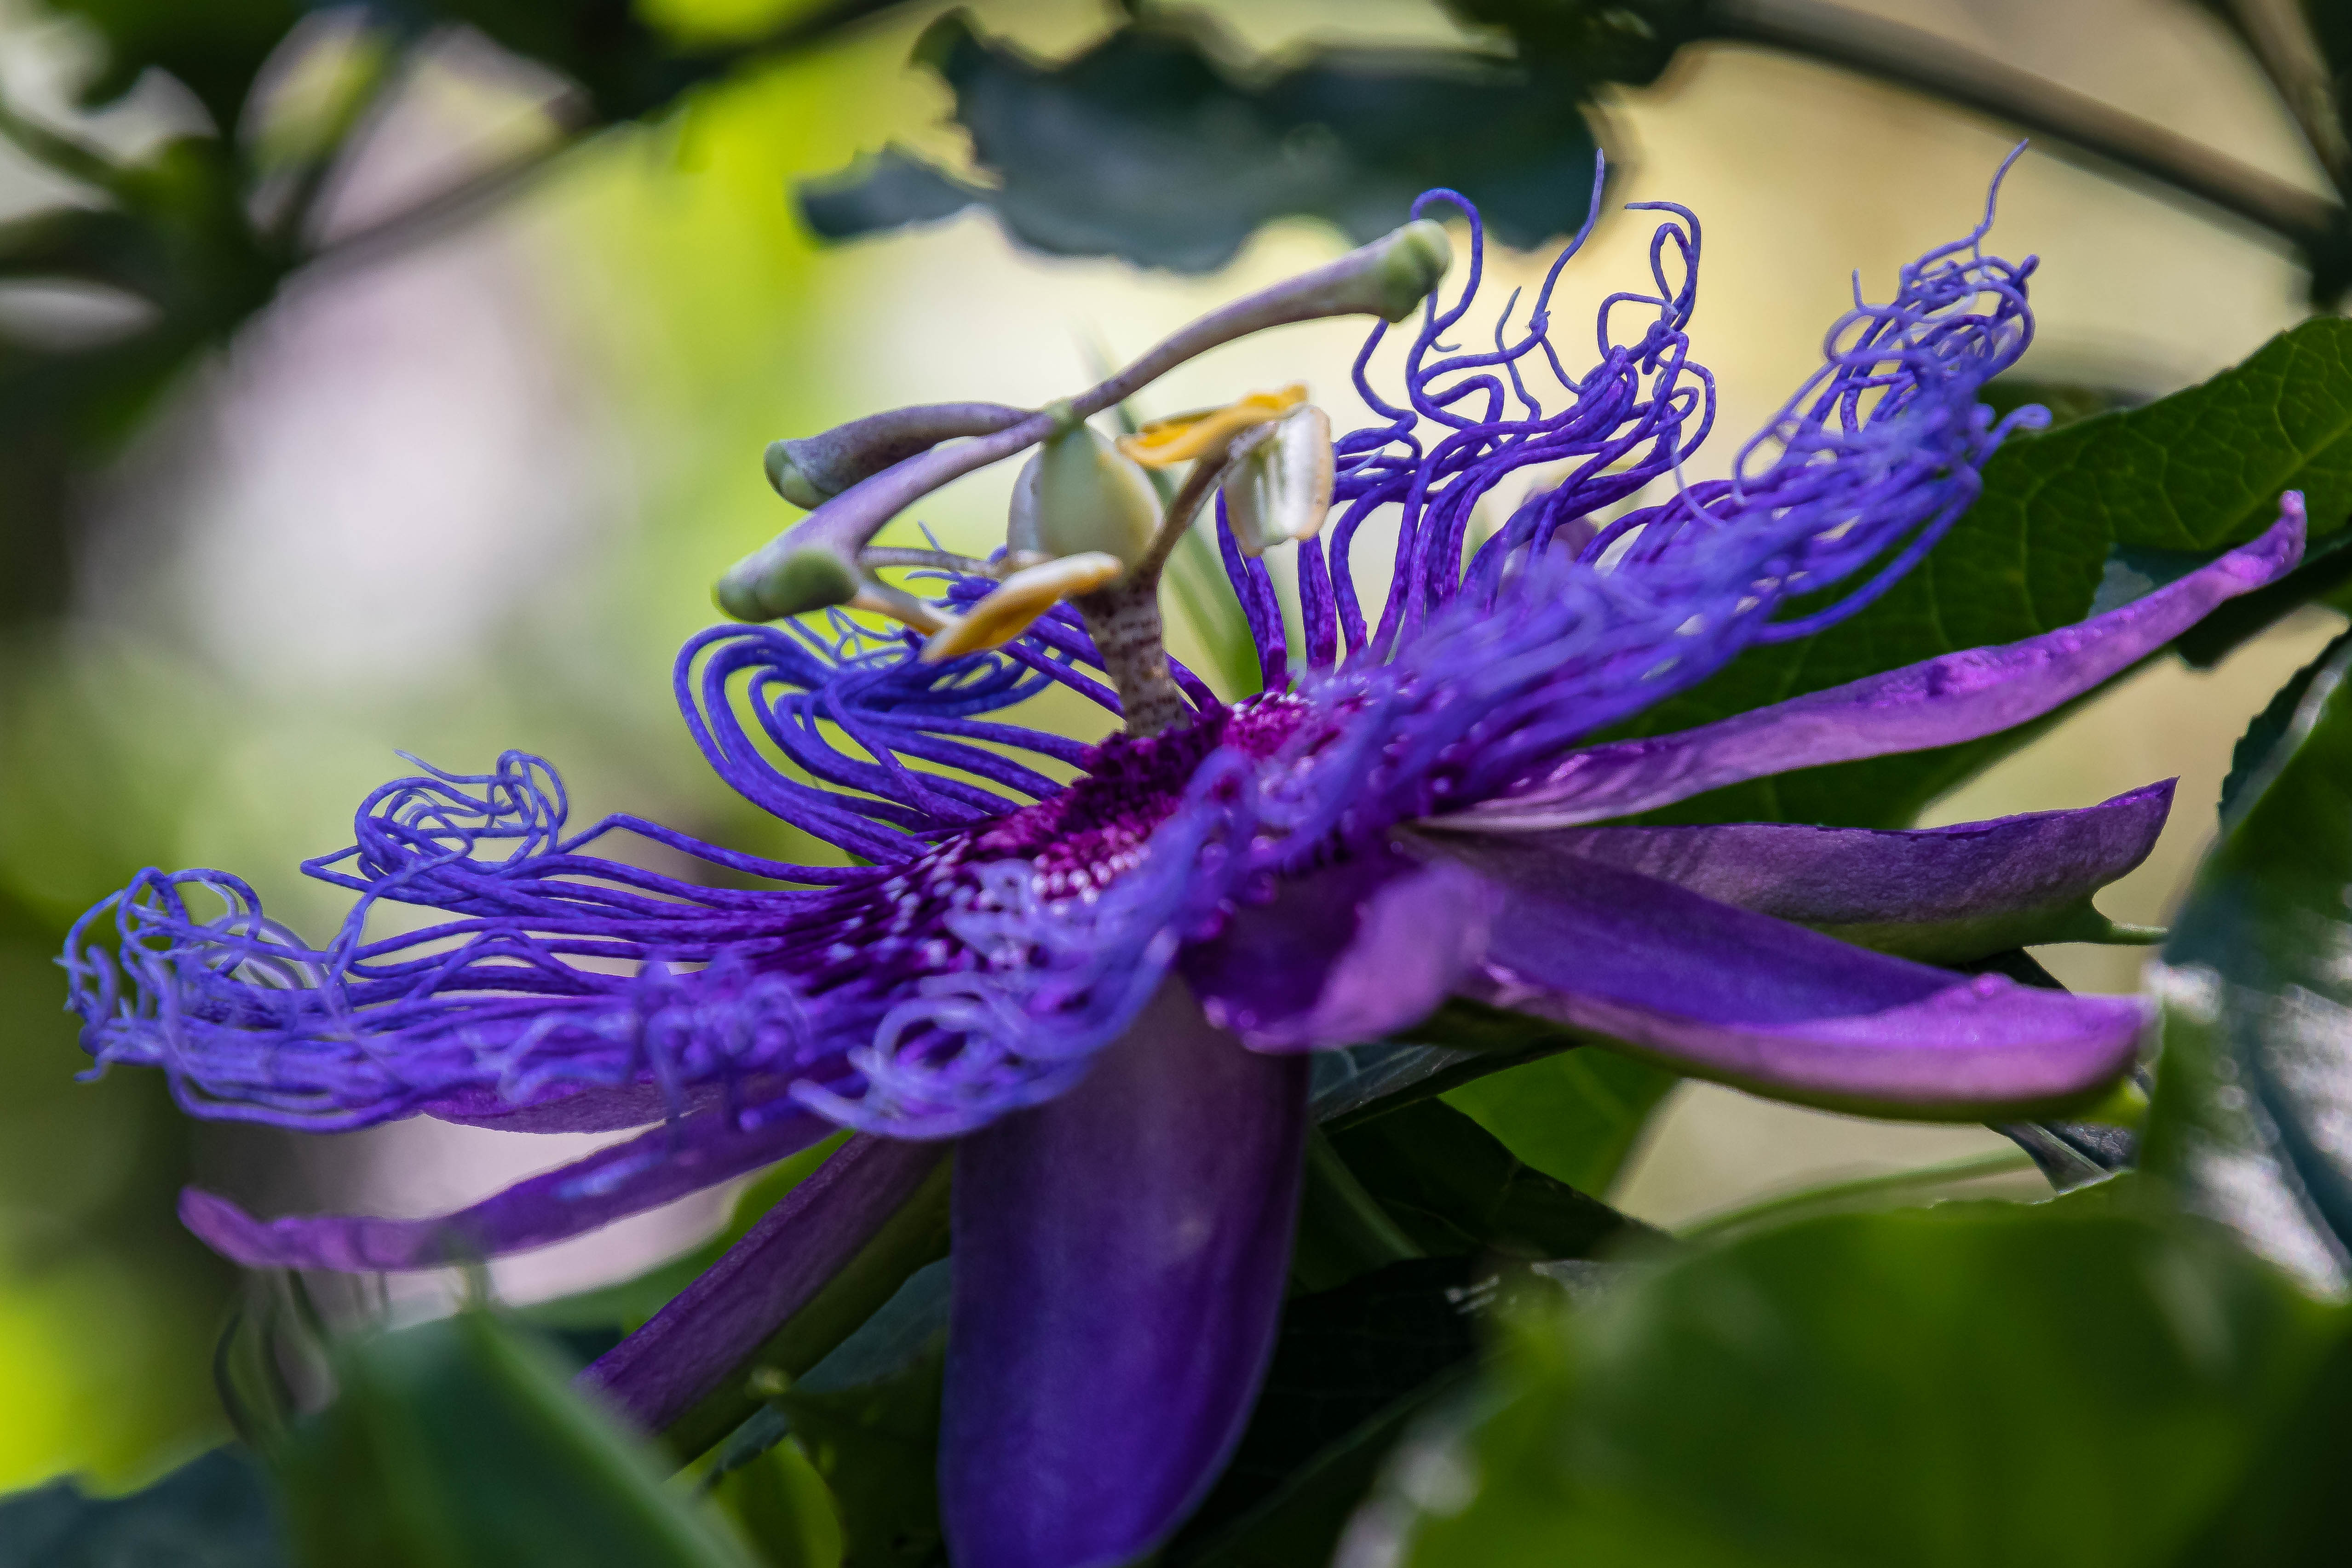 05-19-20passionflower